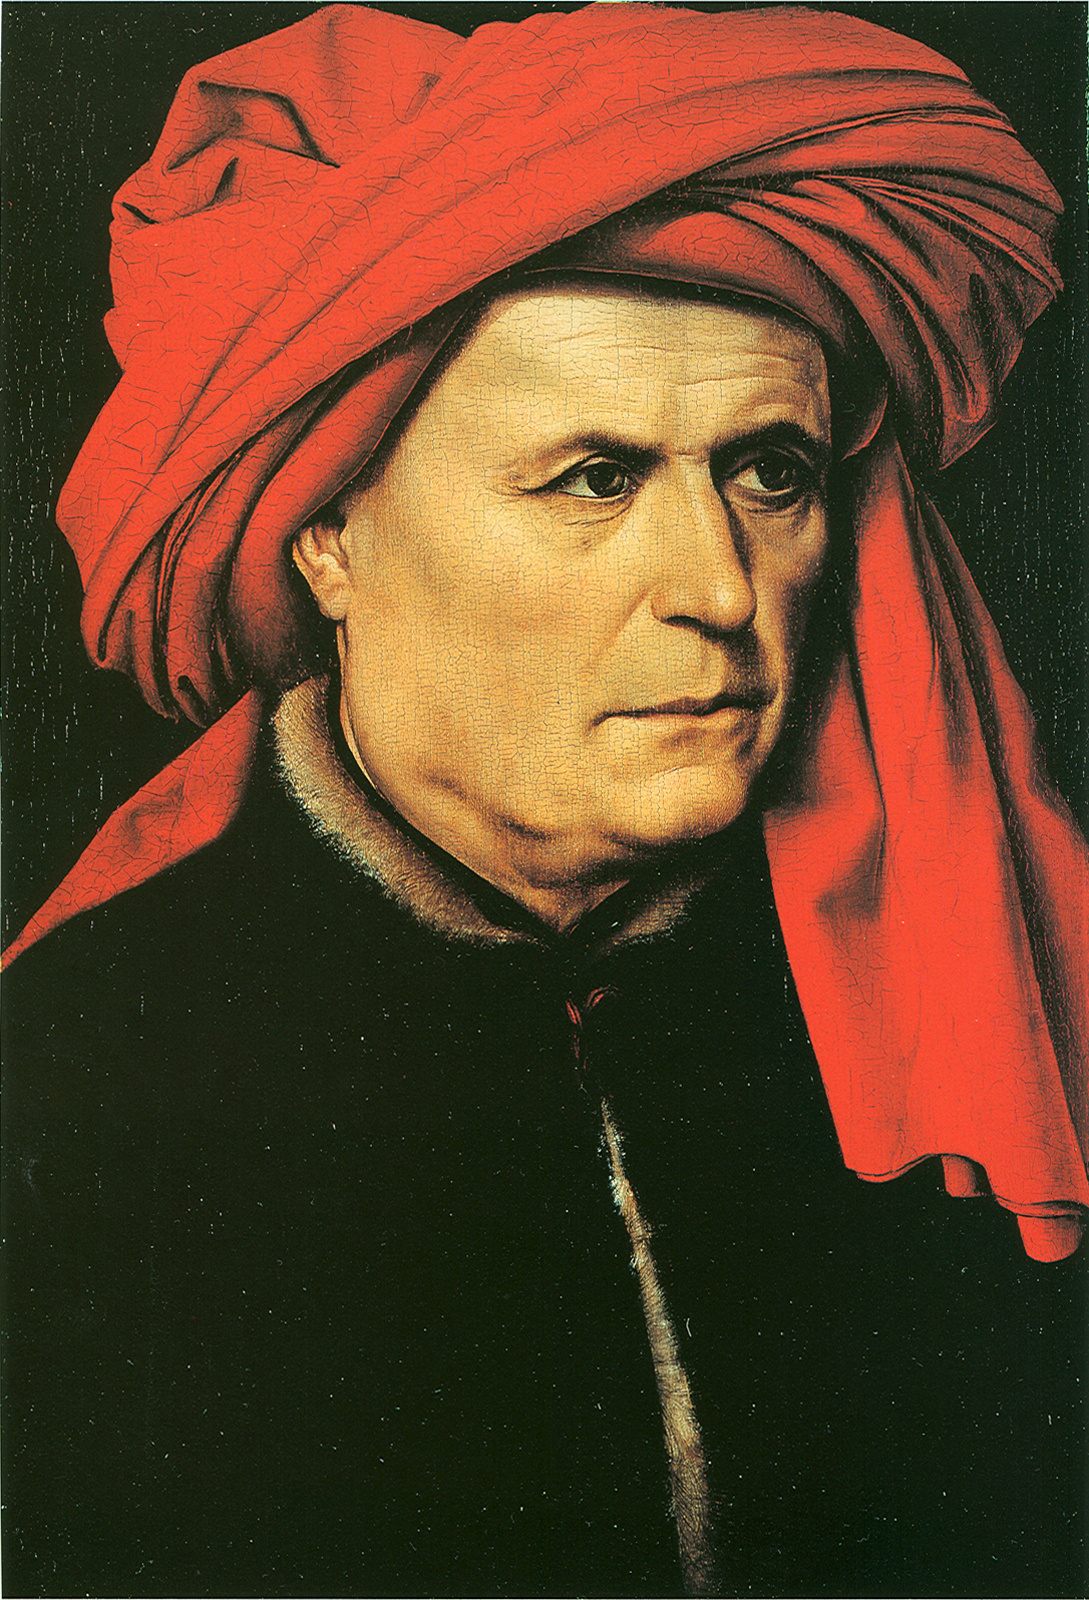 Robert Kampen. Portrait of a man in a red turban